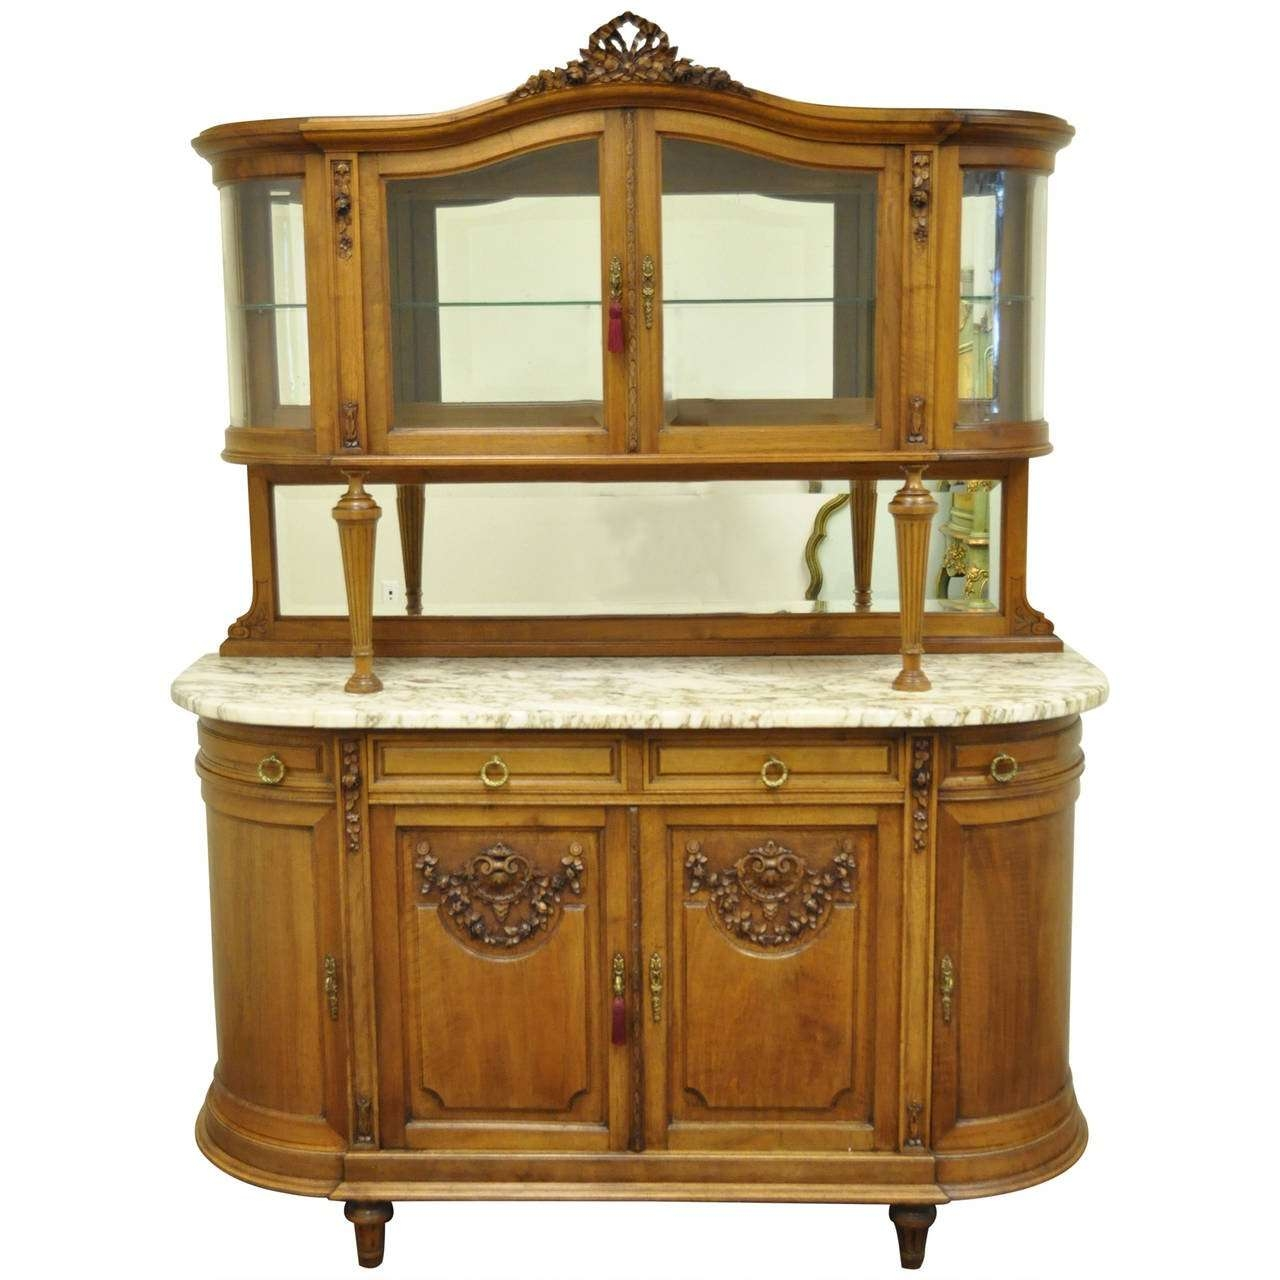 French Louis Xvi Style Marble Top Sideboard Or Curio Cabinet Inside Antique Marble Top Sideboards (View 9 of 20)